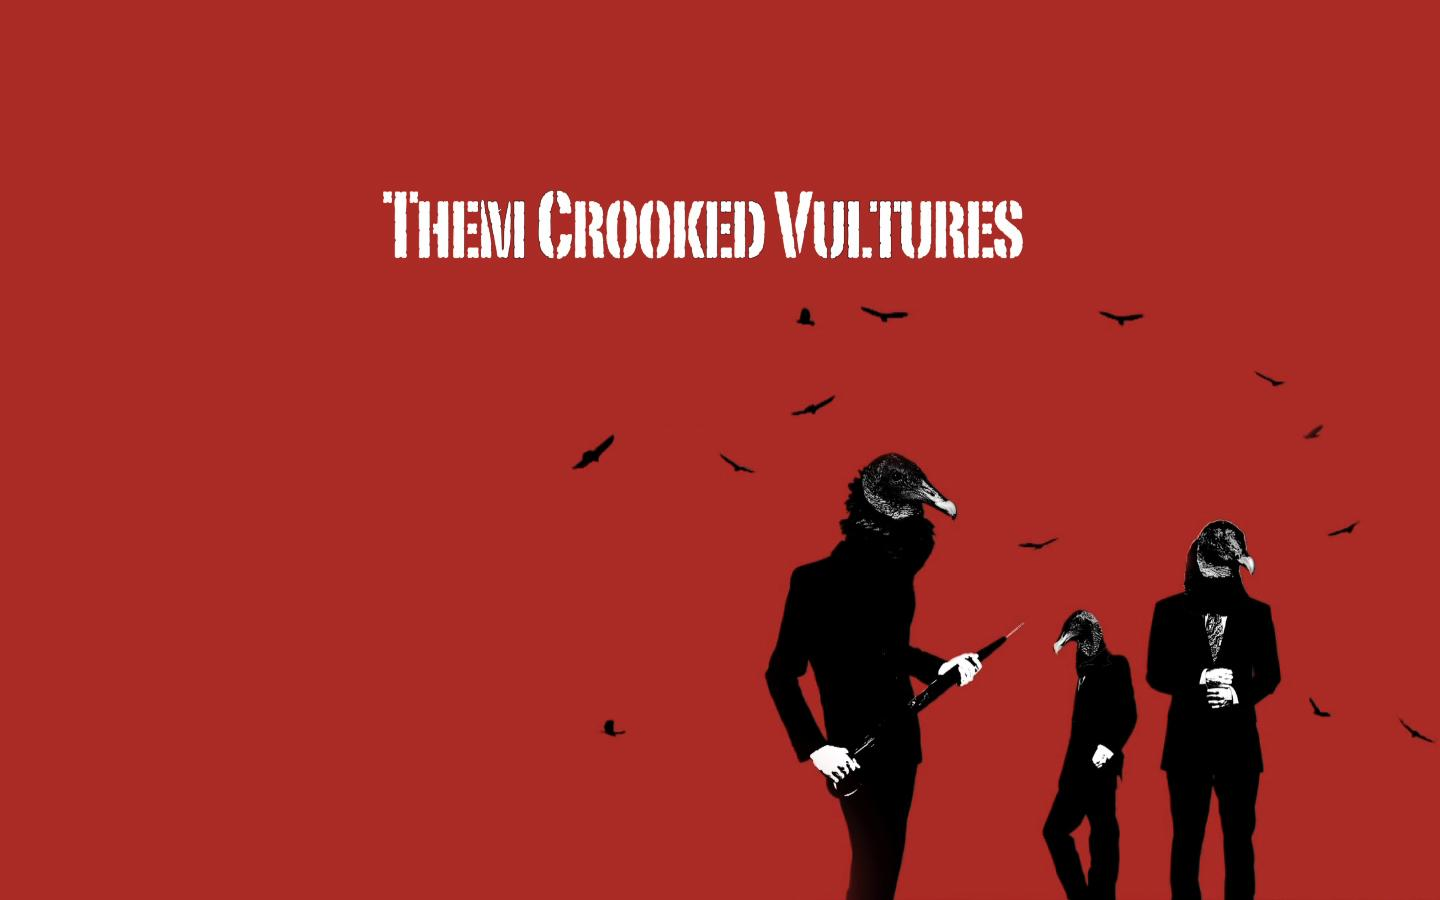 Them Crooked Vultures: Rock'n Revival